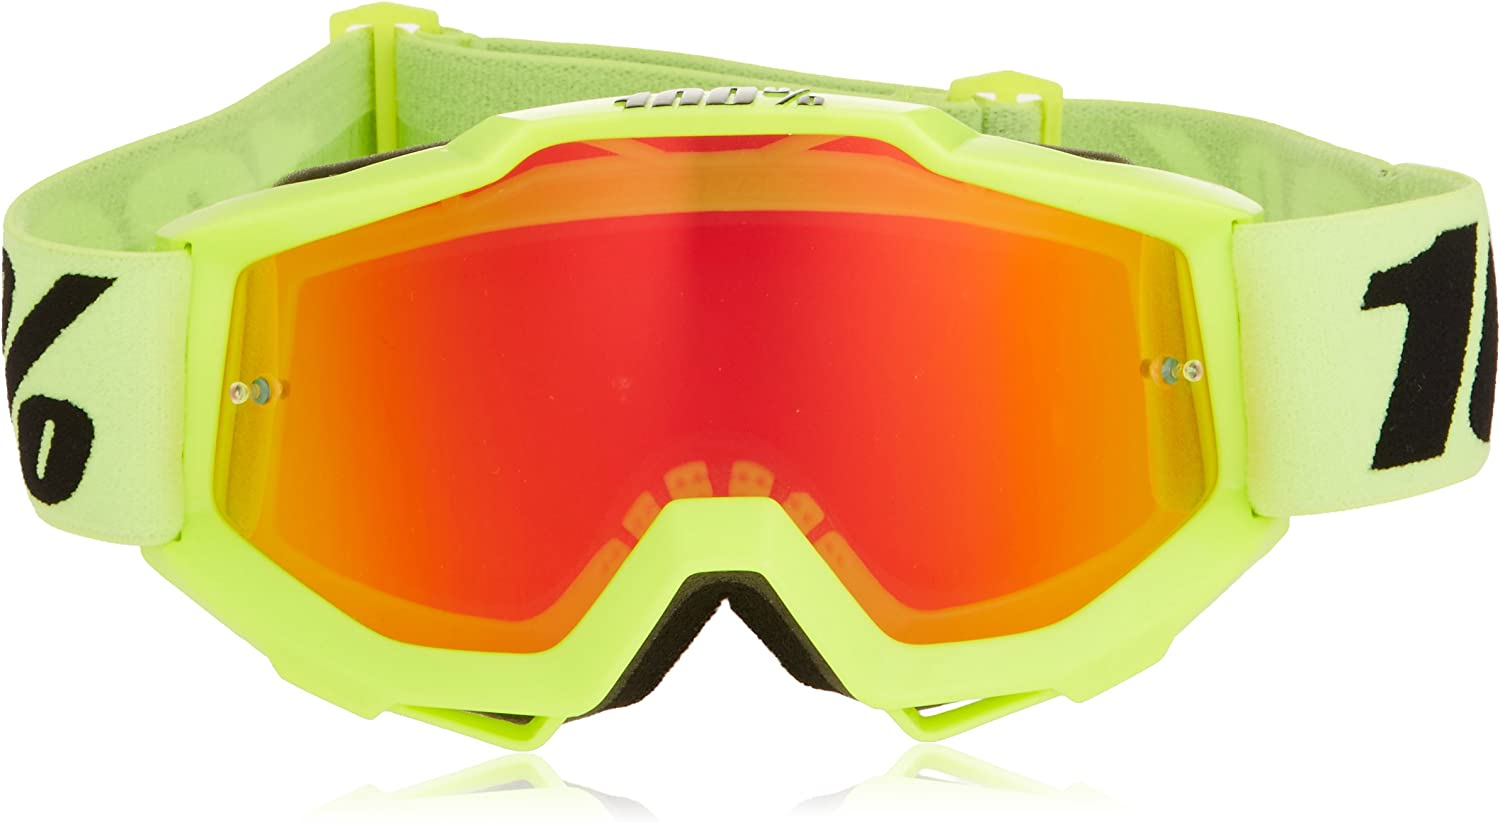 100 50310-004-02 unisex-adult Goggle Yellow,Mirror Red,One Size ACCURI JUNIOR AC Youth FLO Mirror Lens Red